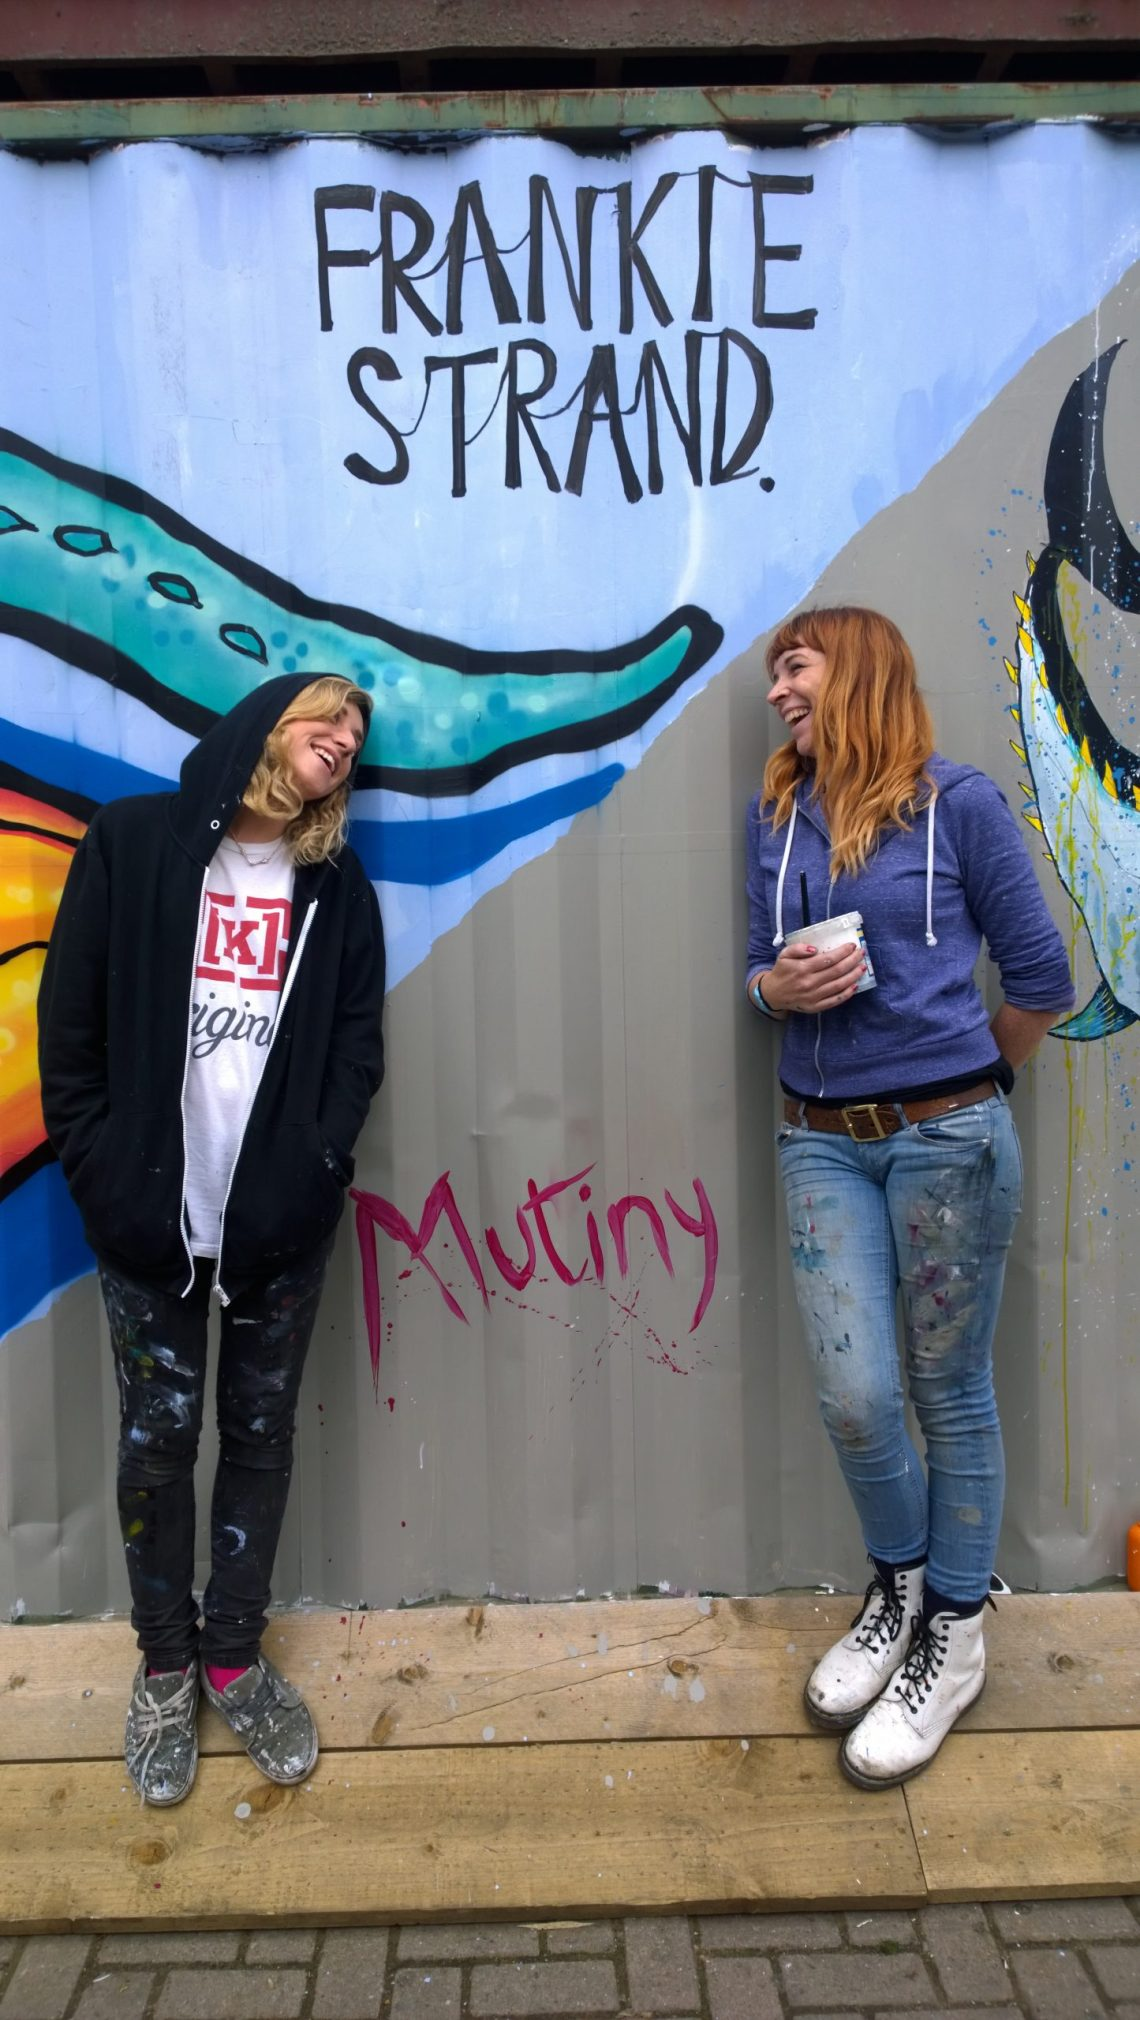 Frankie Strand and Mutiny having finished their piece at Pop Brixton